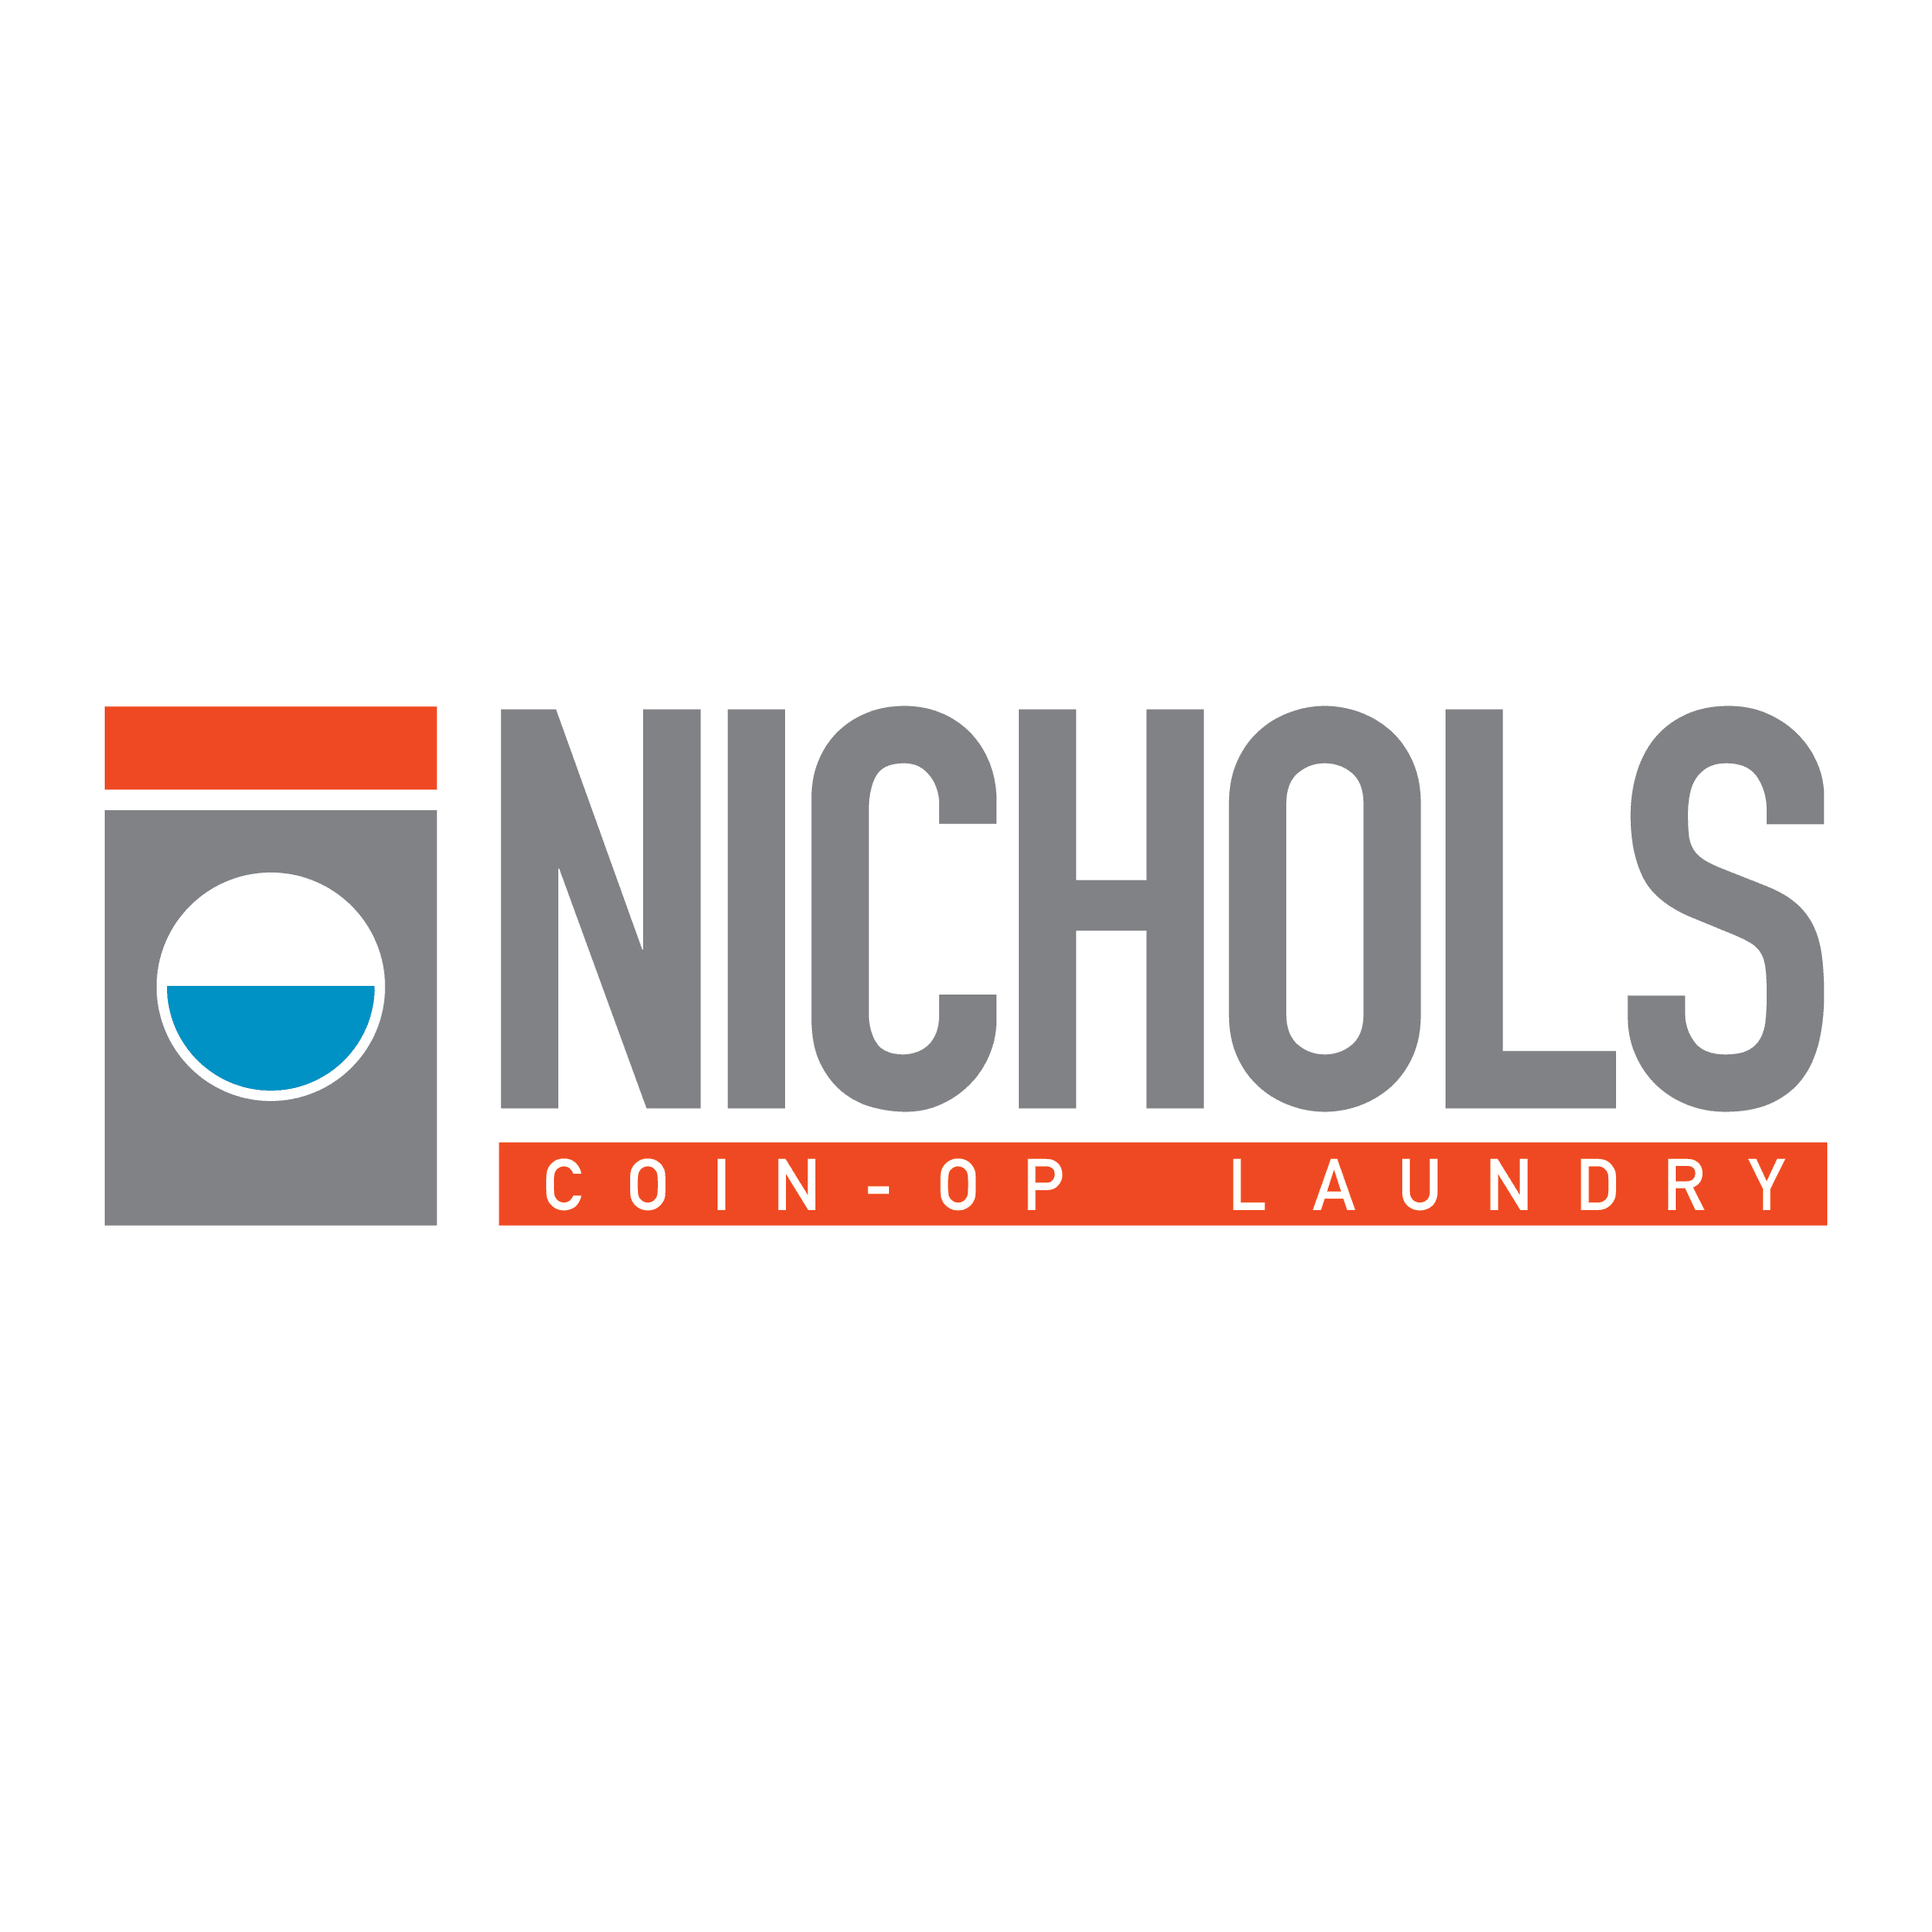 Nichols Coin-Op Laundry EQ, LLC